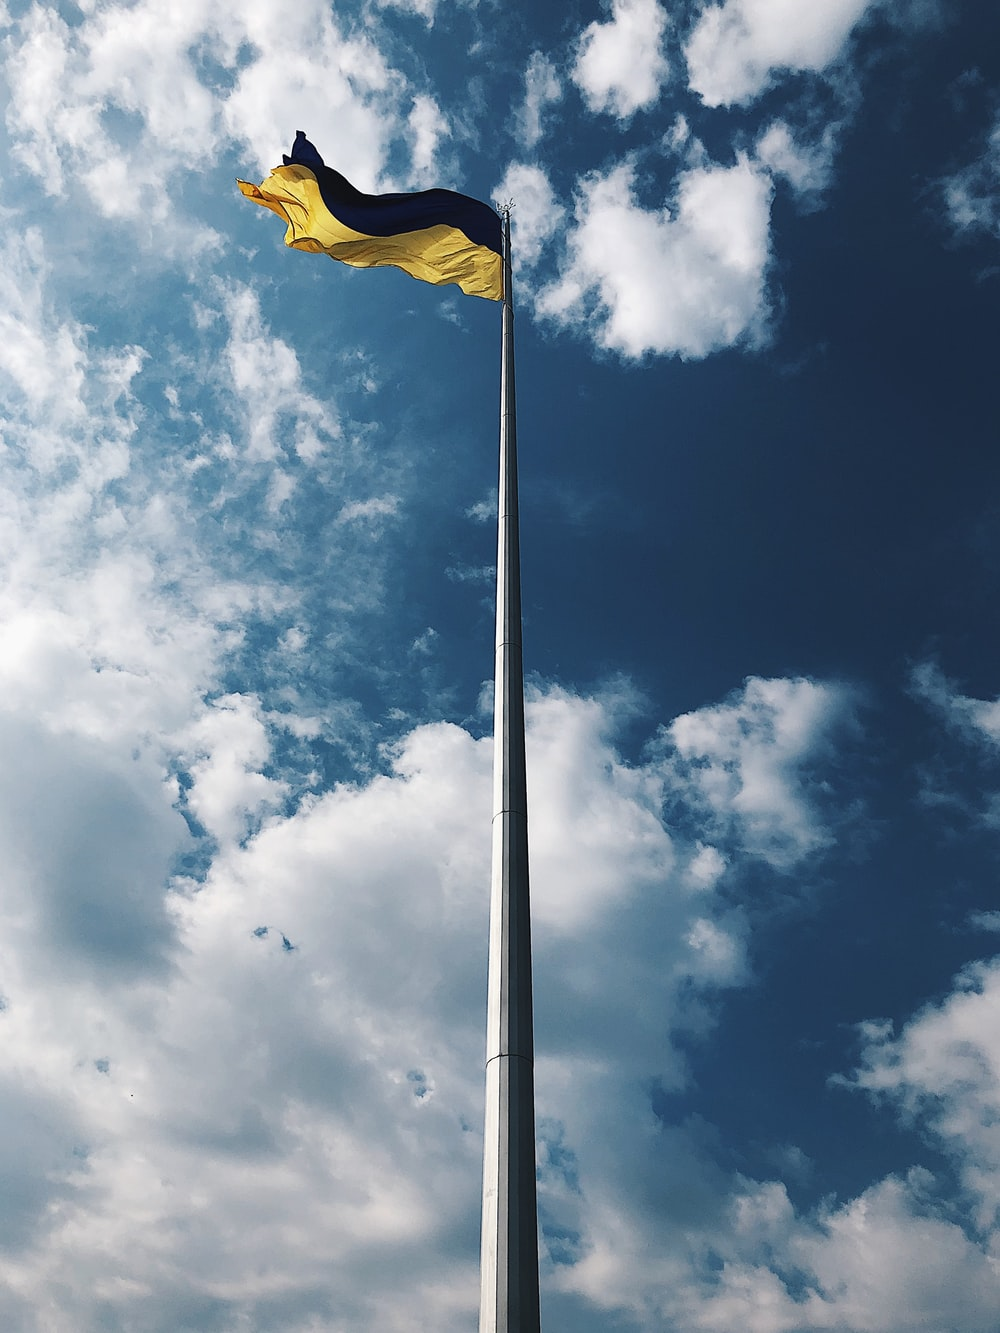 yellow flag under white clouds and blue sky during daytime